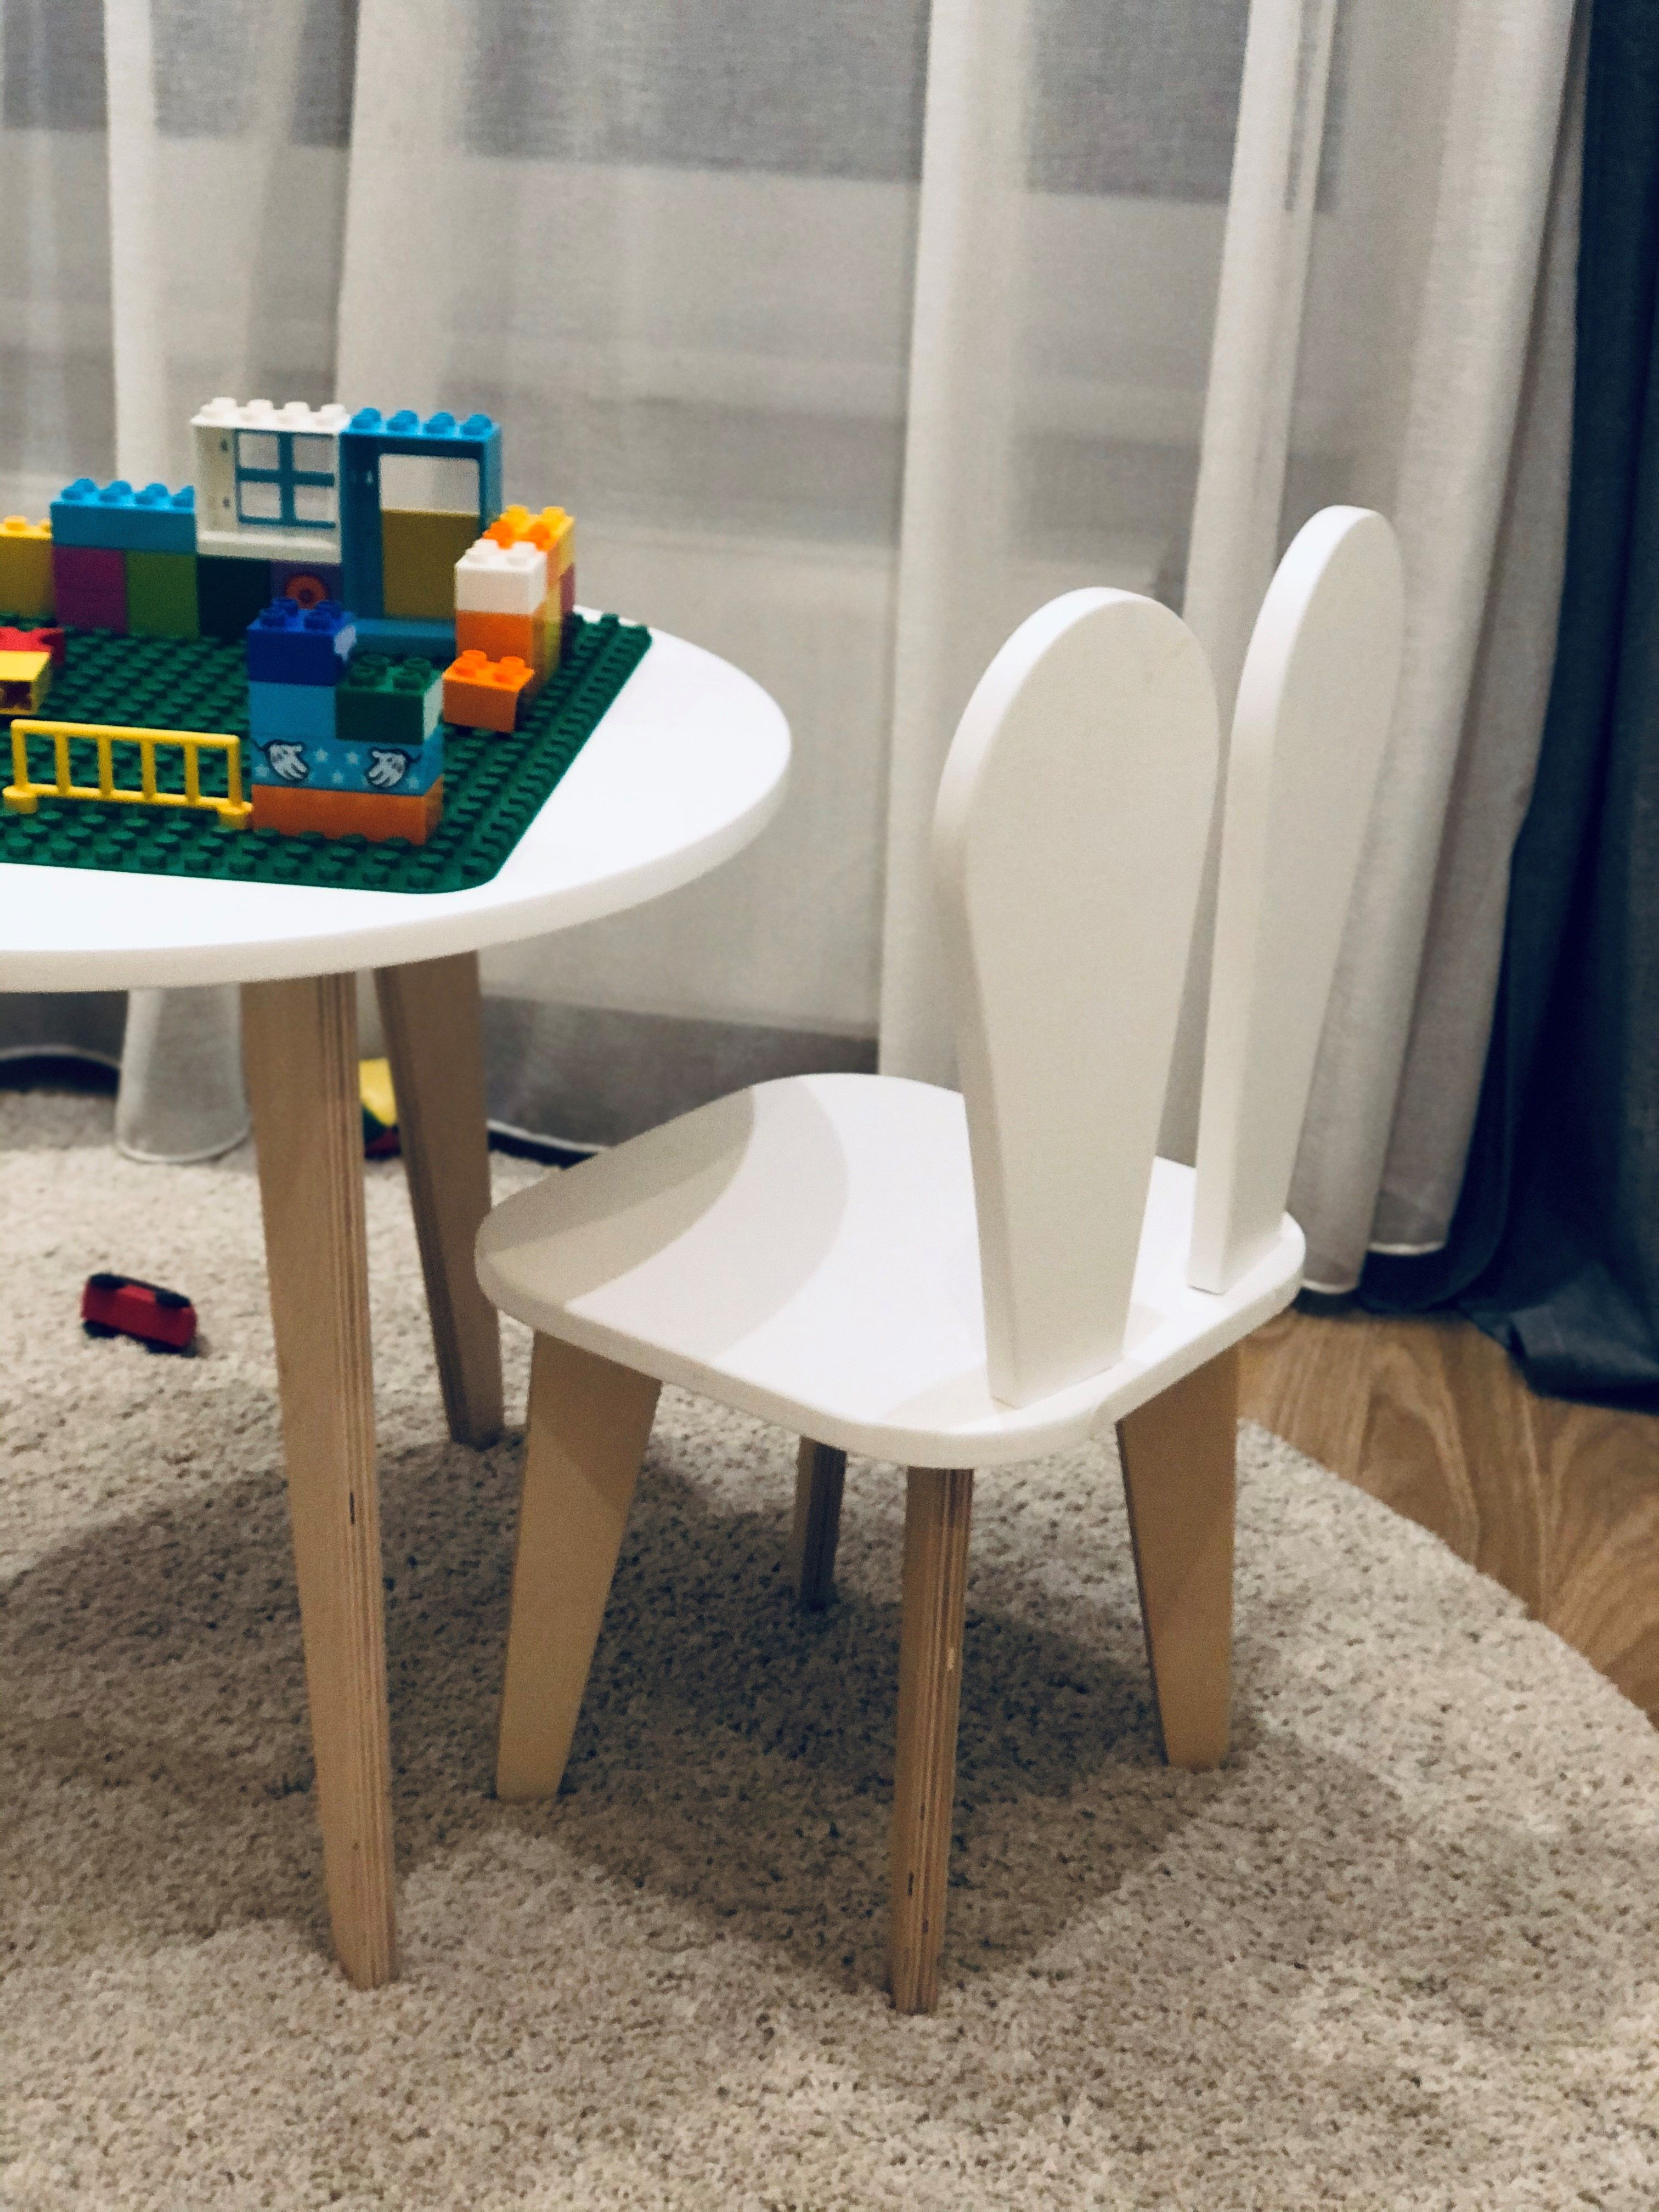 Kid Bunny Chair And Table Set Toddler Furniture Kid Table Baby Furniture Baby Stool Toddler Chair Scandinavian Style Kid Furniture Kids Wooden Table Kids Table And Chairs Toddler Chair